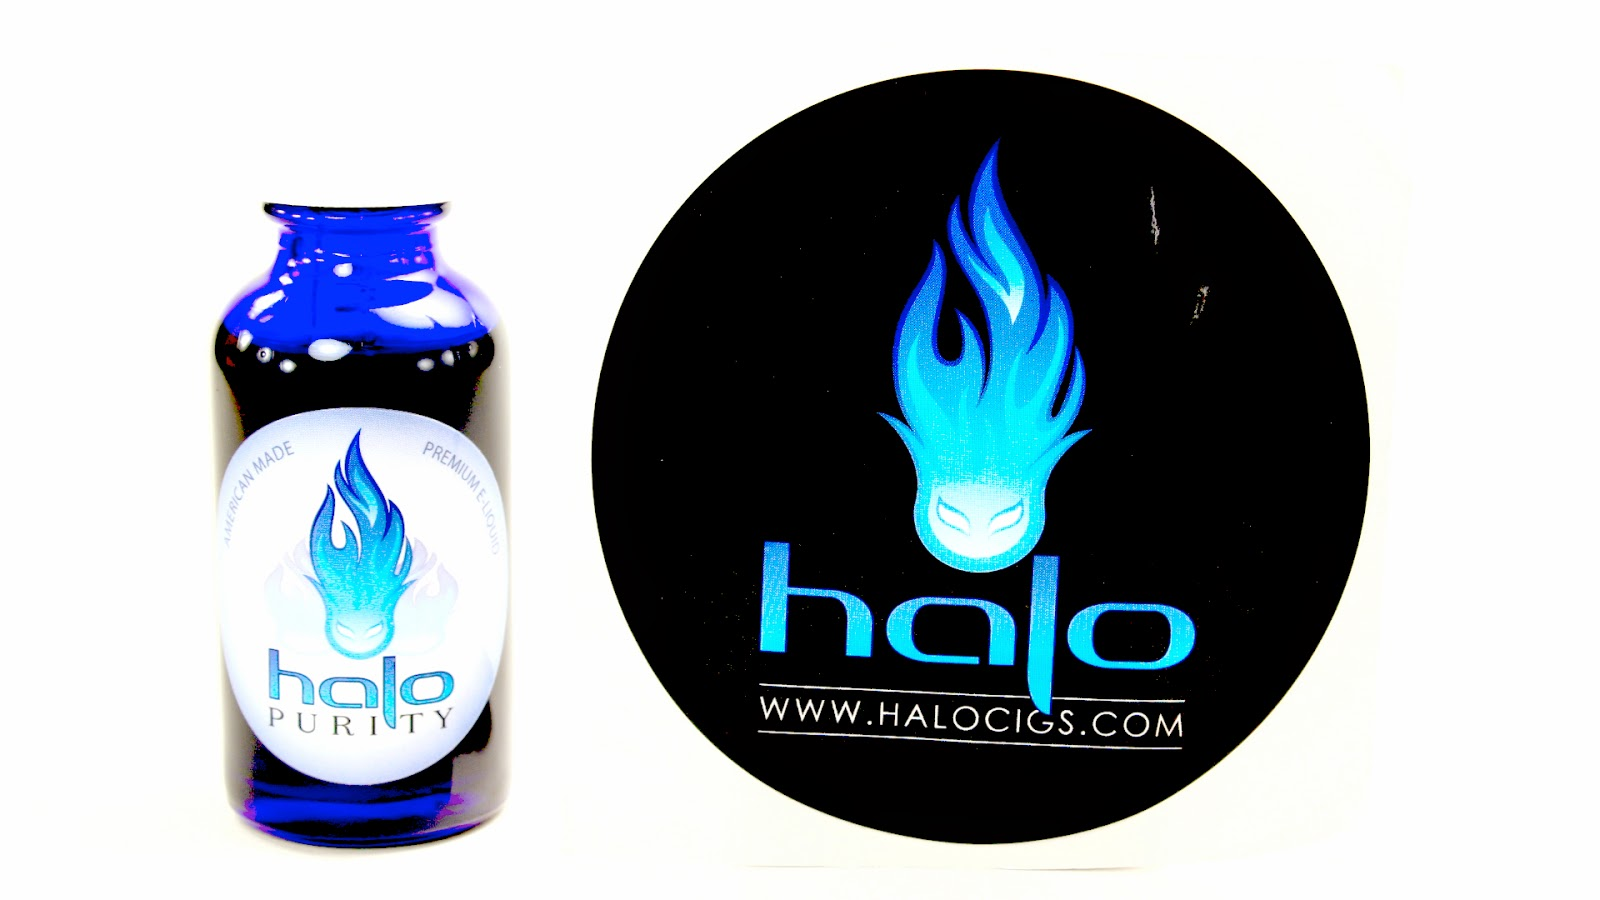 http://www.darthvaporreviews.com/dvr/Halo-Cigs-Black-Calico-E-Liquid-Review-Coupon.html